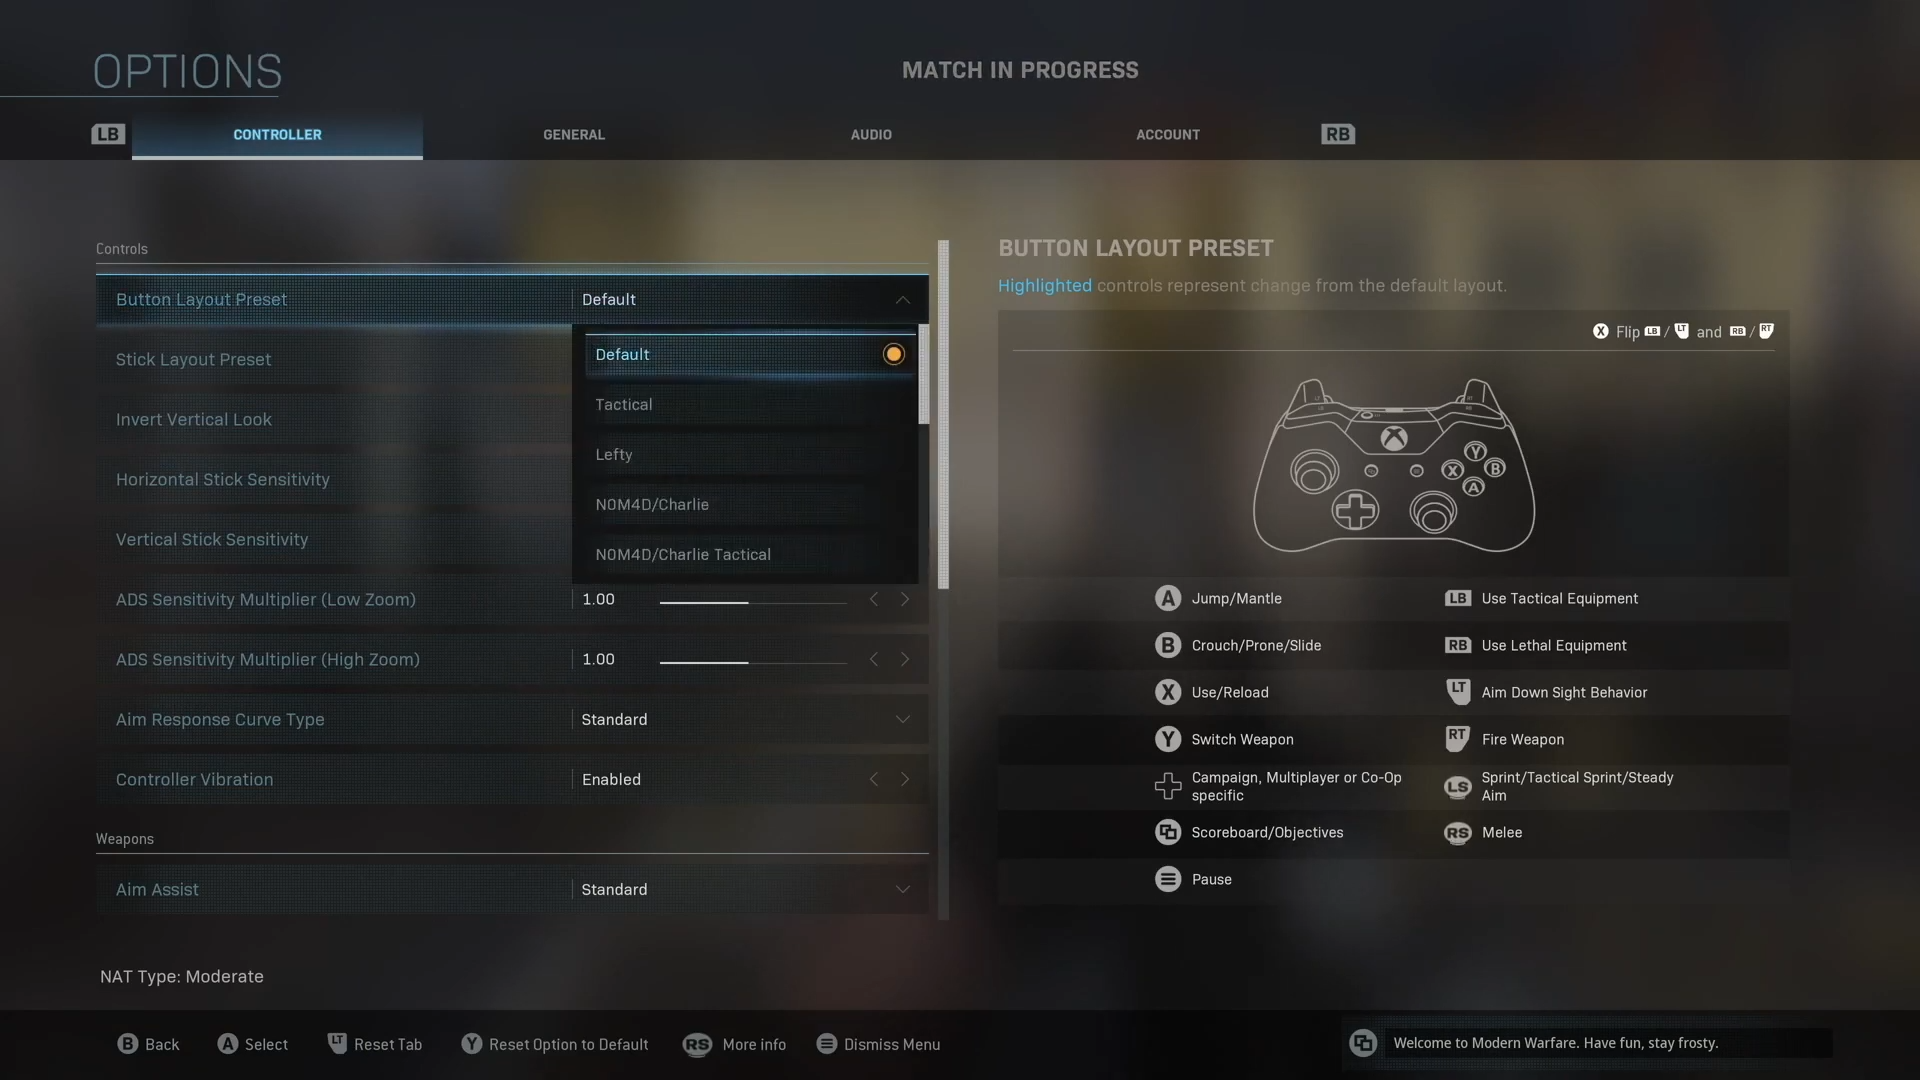 Screenshot showing Call of Duty Modern Warfare controller layout options.